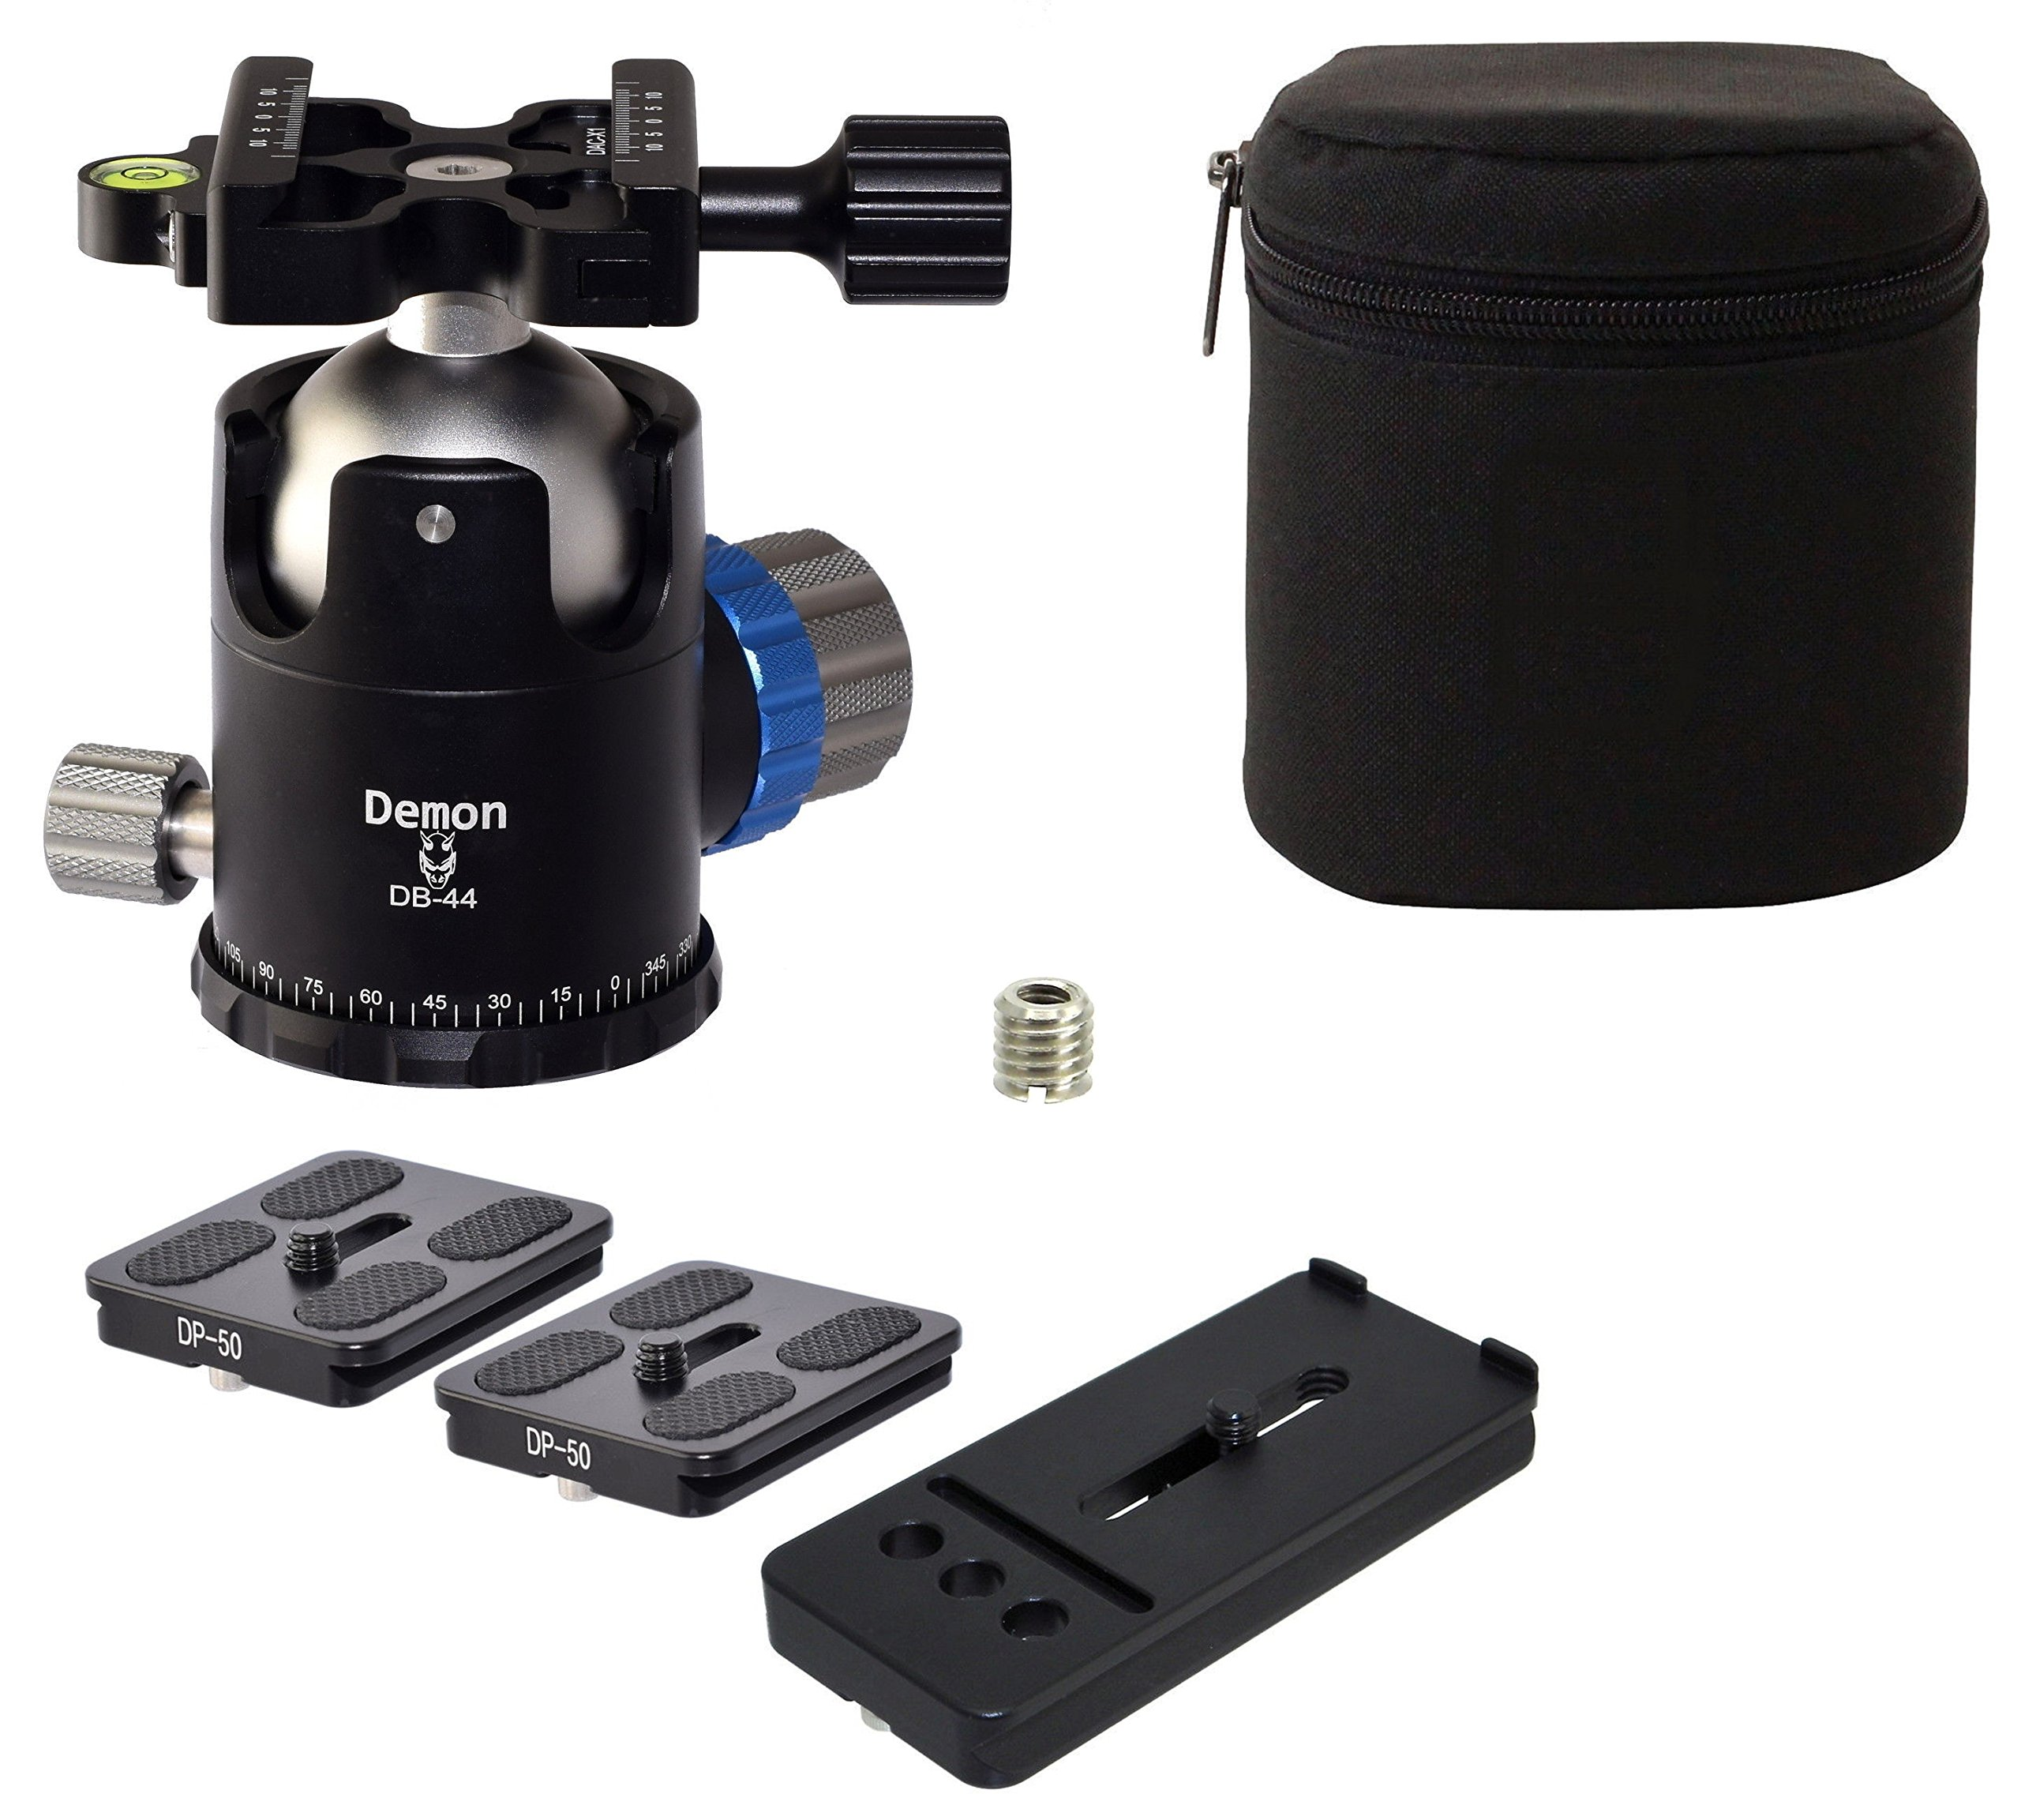 Demon KIT DB-44 & 3 QR Plates 46mm Tripod Ball Head Arca Compatible with Pan Lock Desmond by Demon